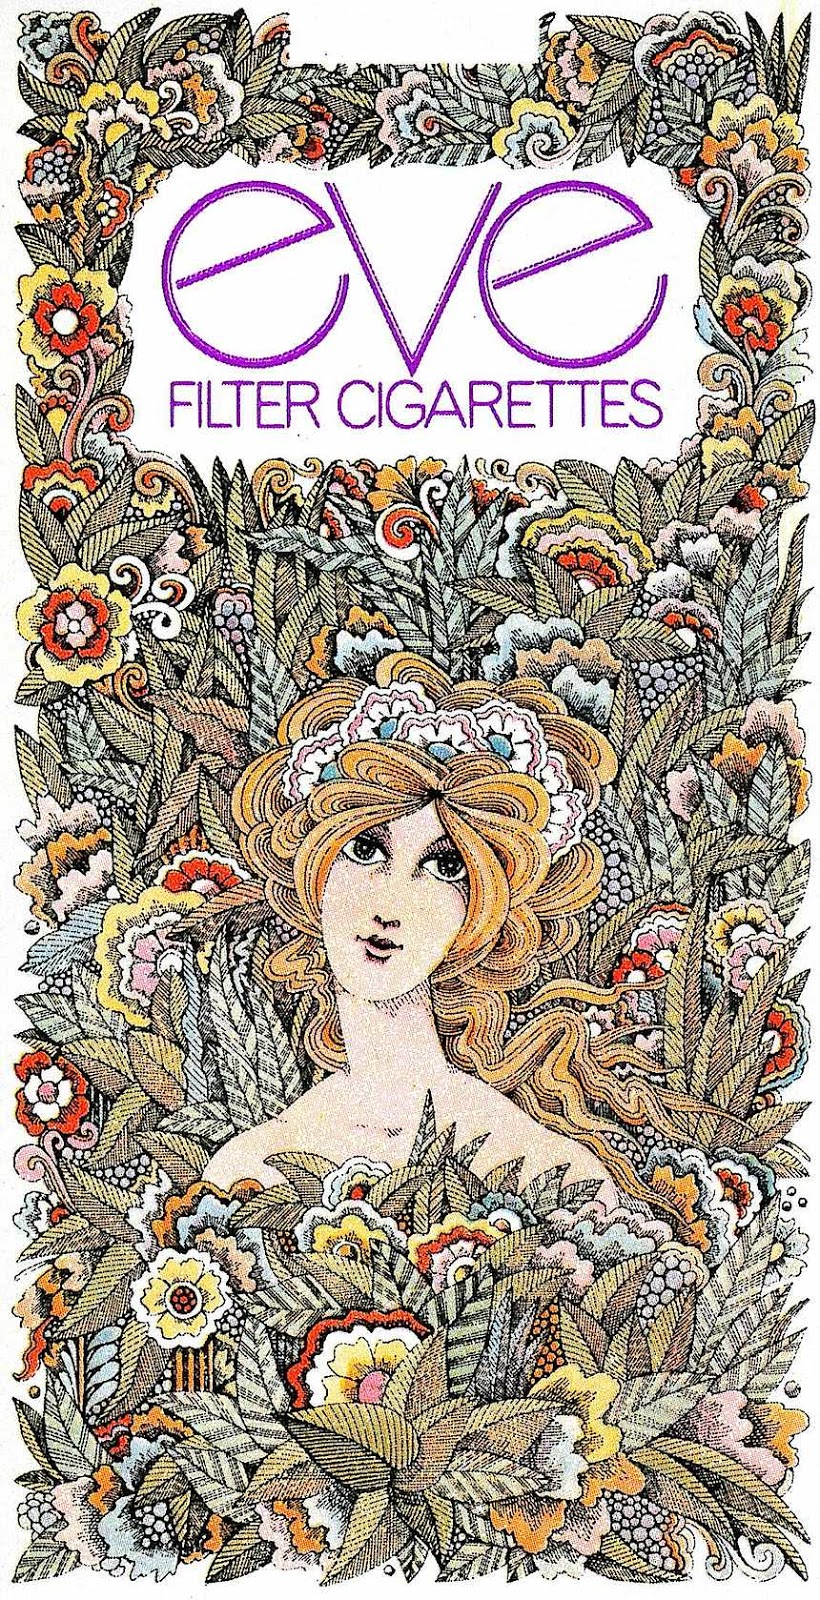 1971 Eve cigarettes package illustration